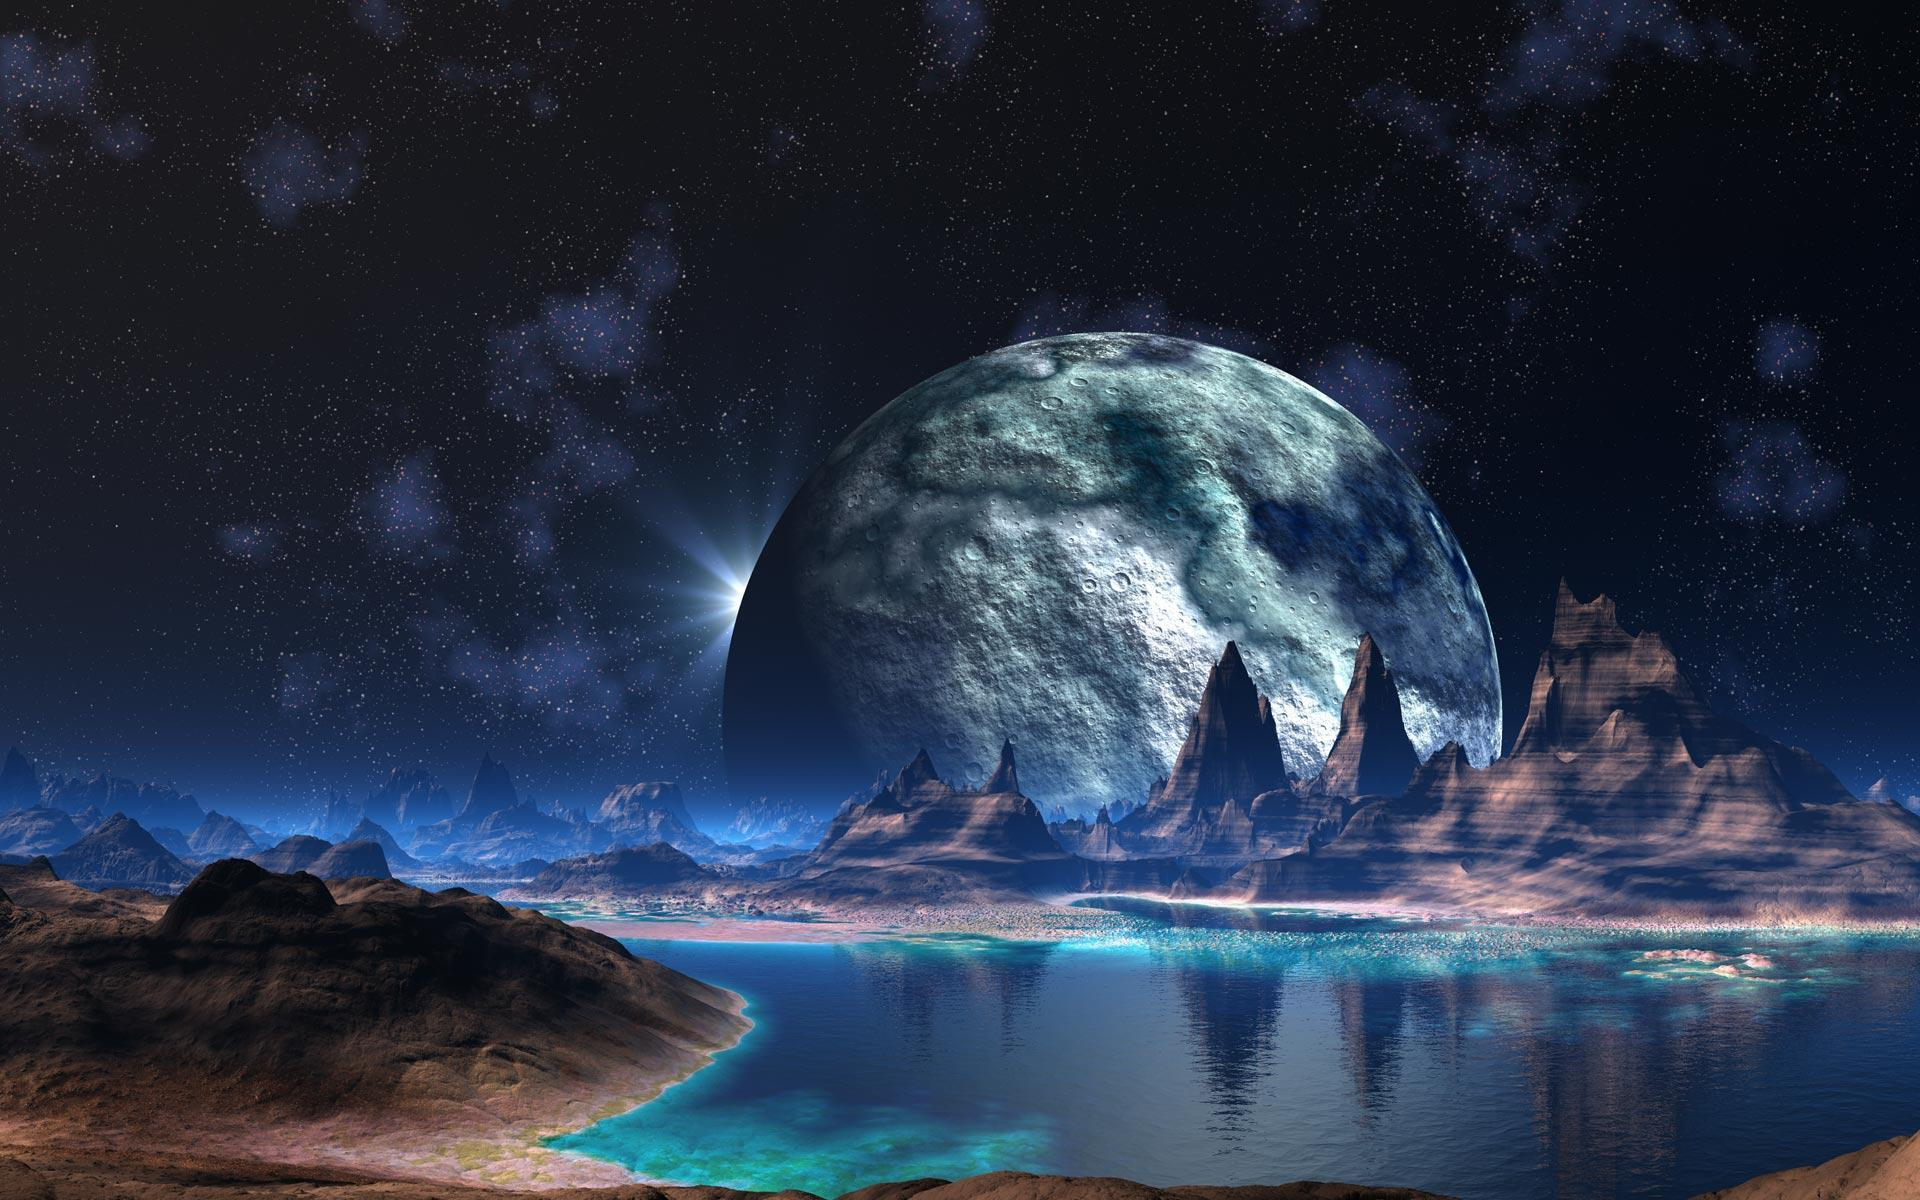 sci fi planets space desktop wallpaper background screensaver